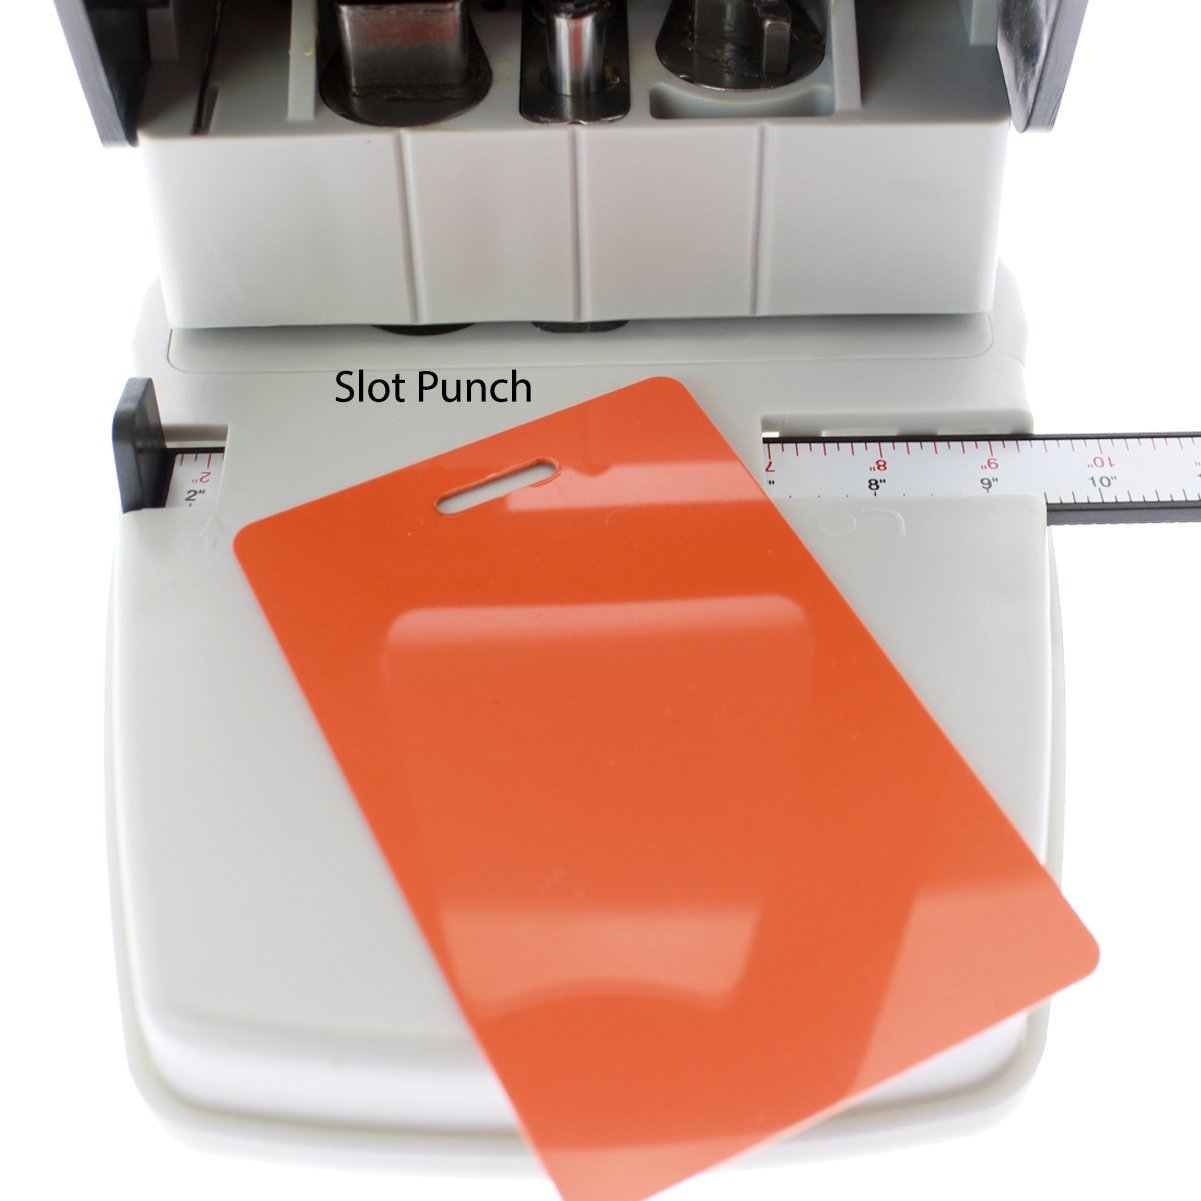 Desktop ID Card Hole Punch Tool for Name Badges - Three in One Slot ...